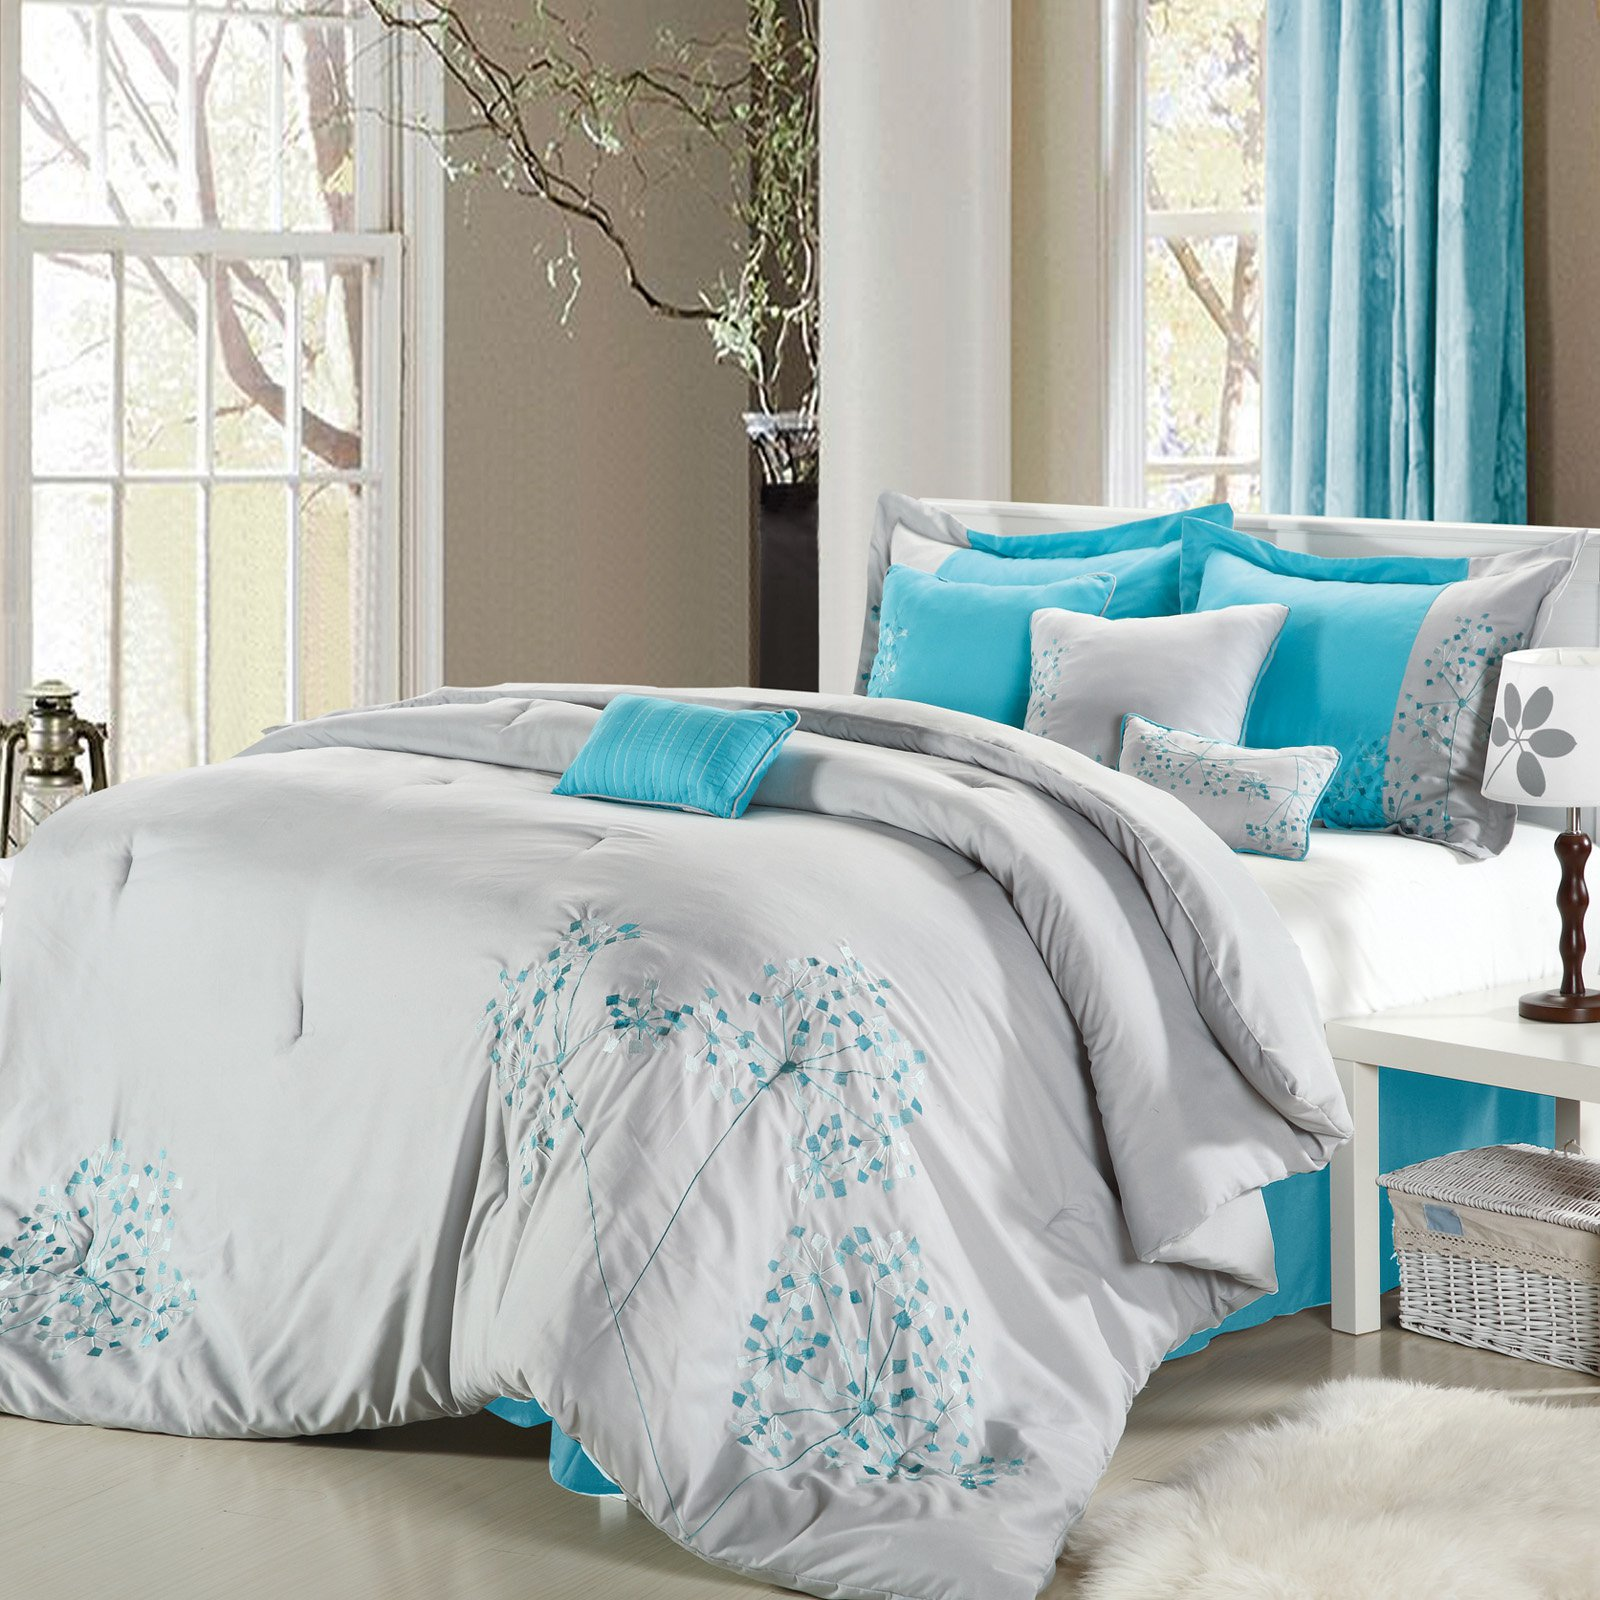 Chic Home Pink Floral 8 Piece Comforter Set